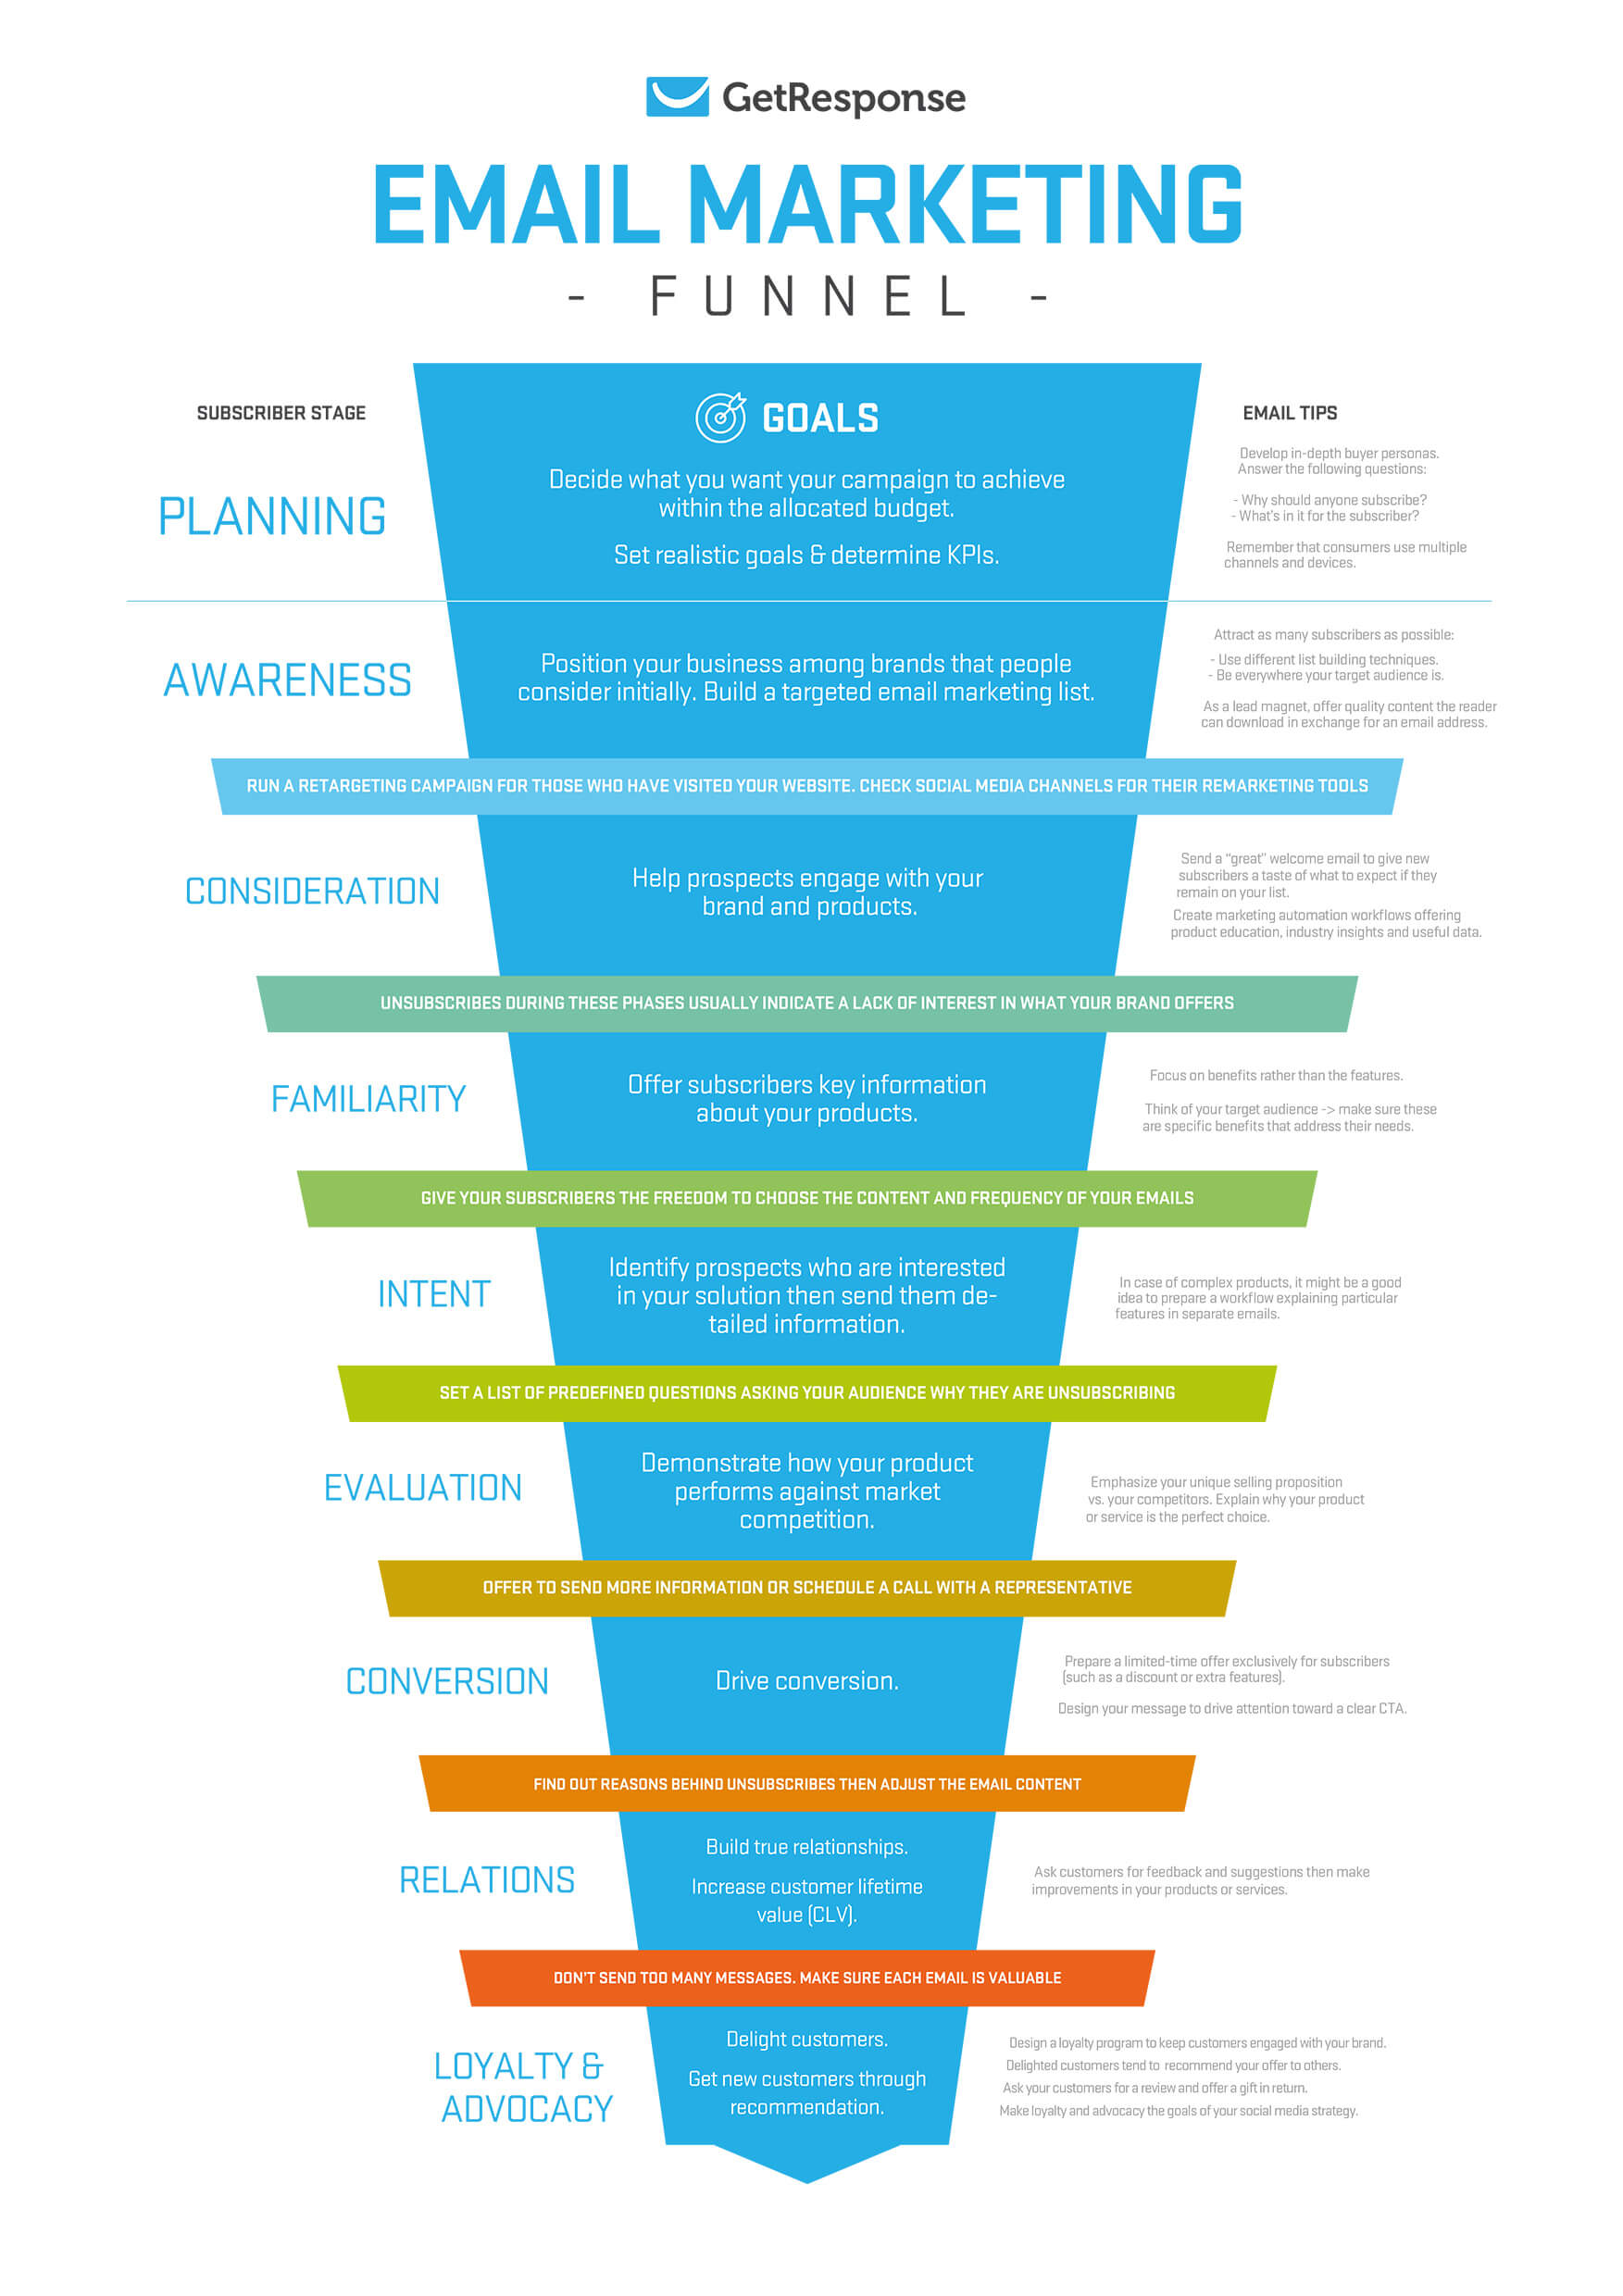 Email Marketing Funnel Example